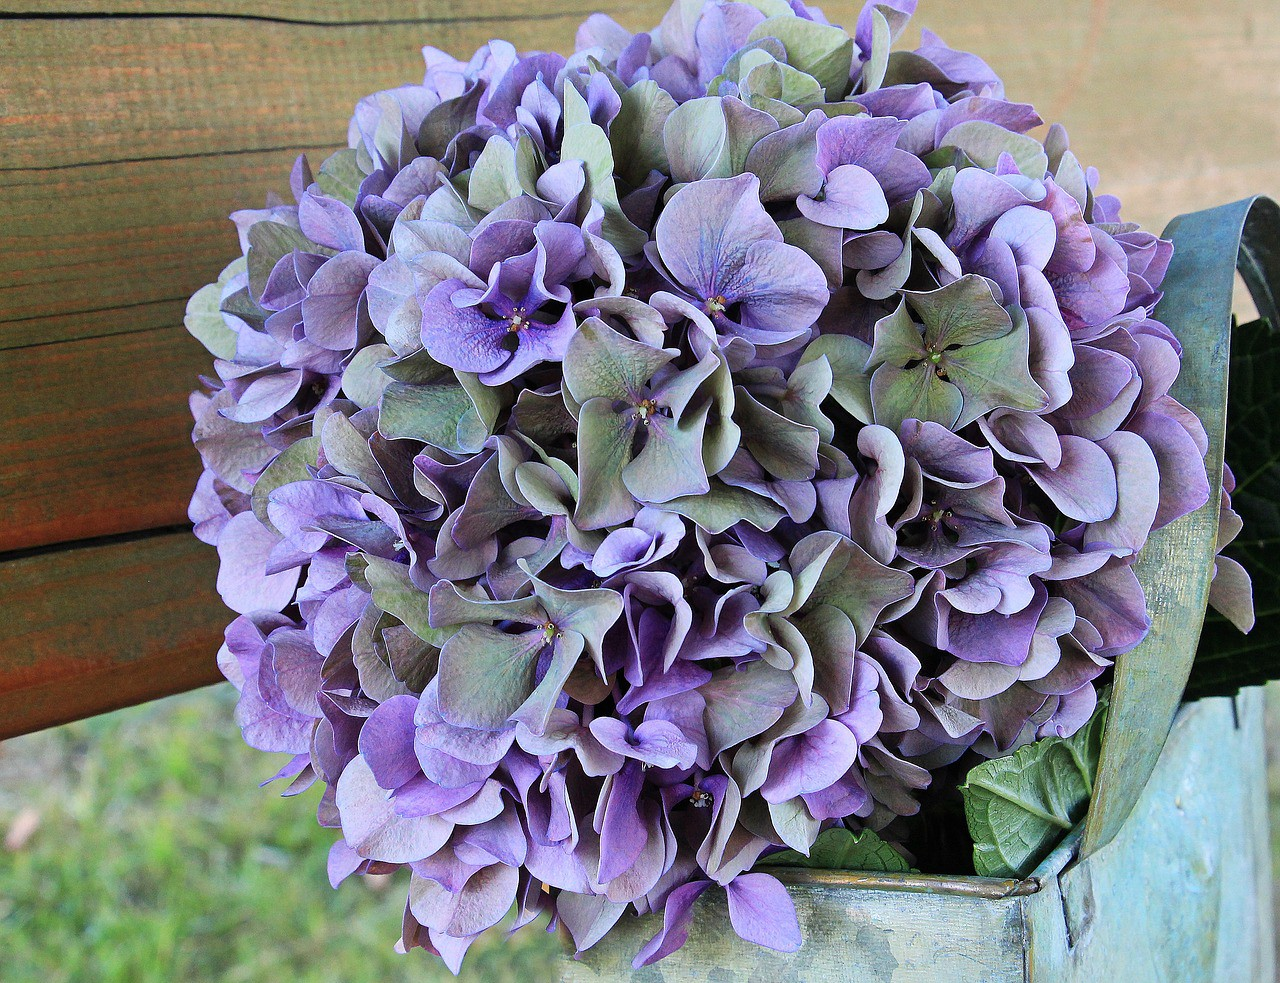 Rare Flowers To Gift Allergy Sufferers Flower Delivery Tarzana